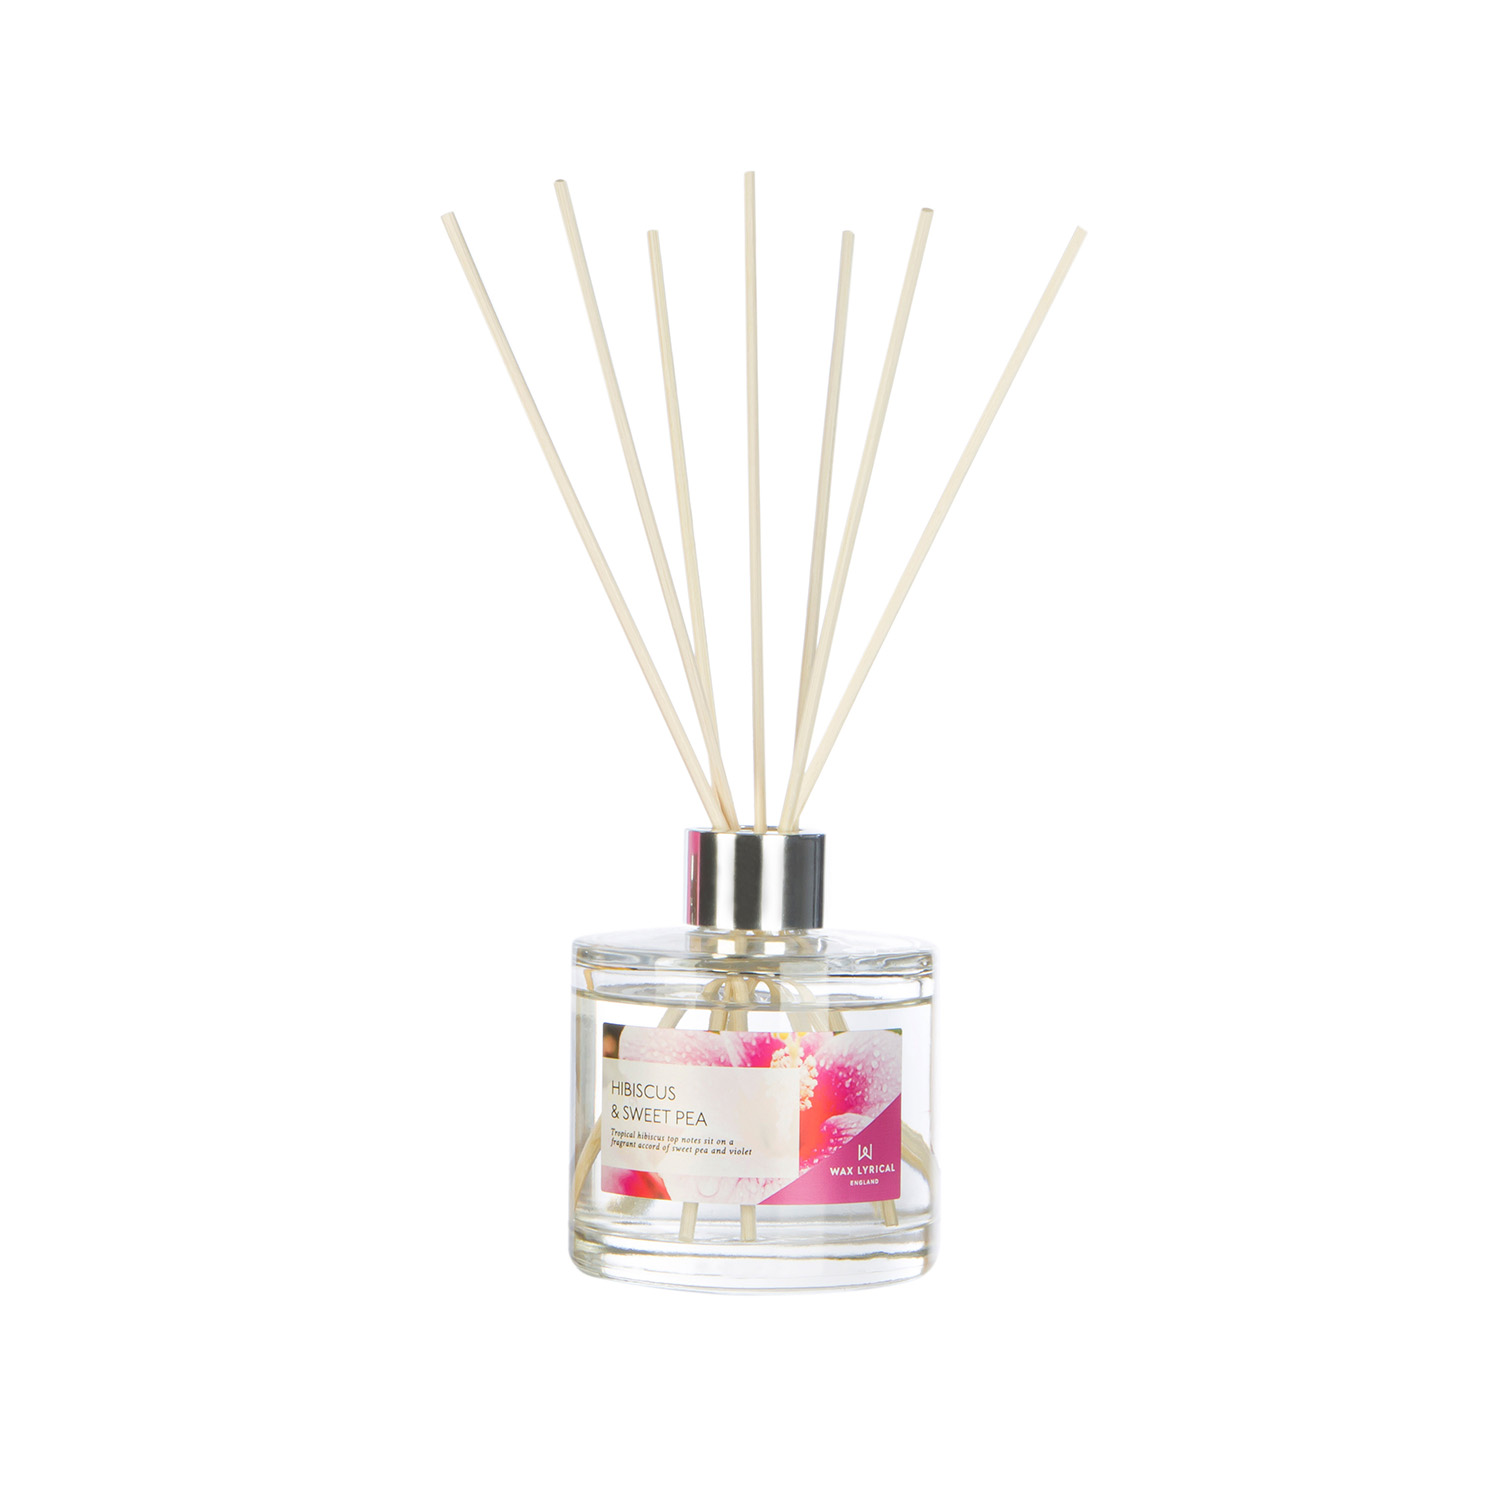 Modern Floral Hibiscus & Sweet Pea Reed Diffuser